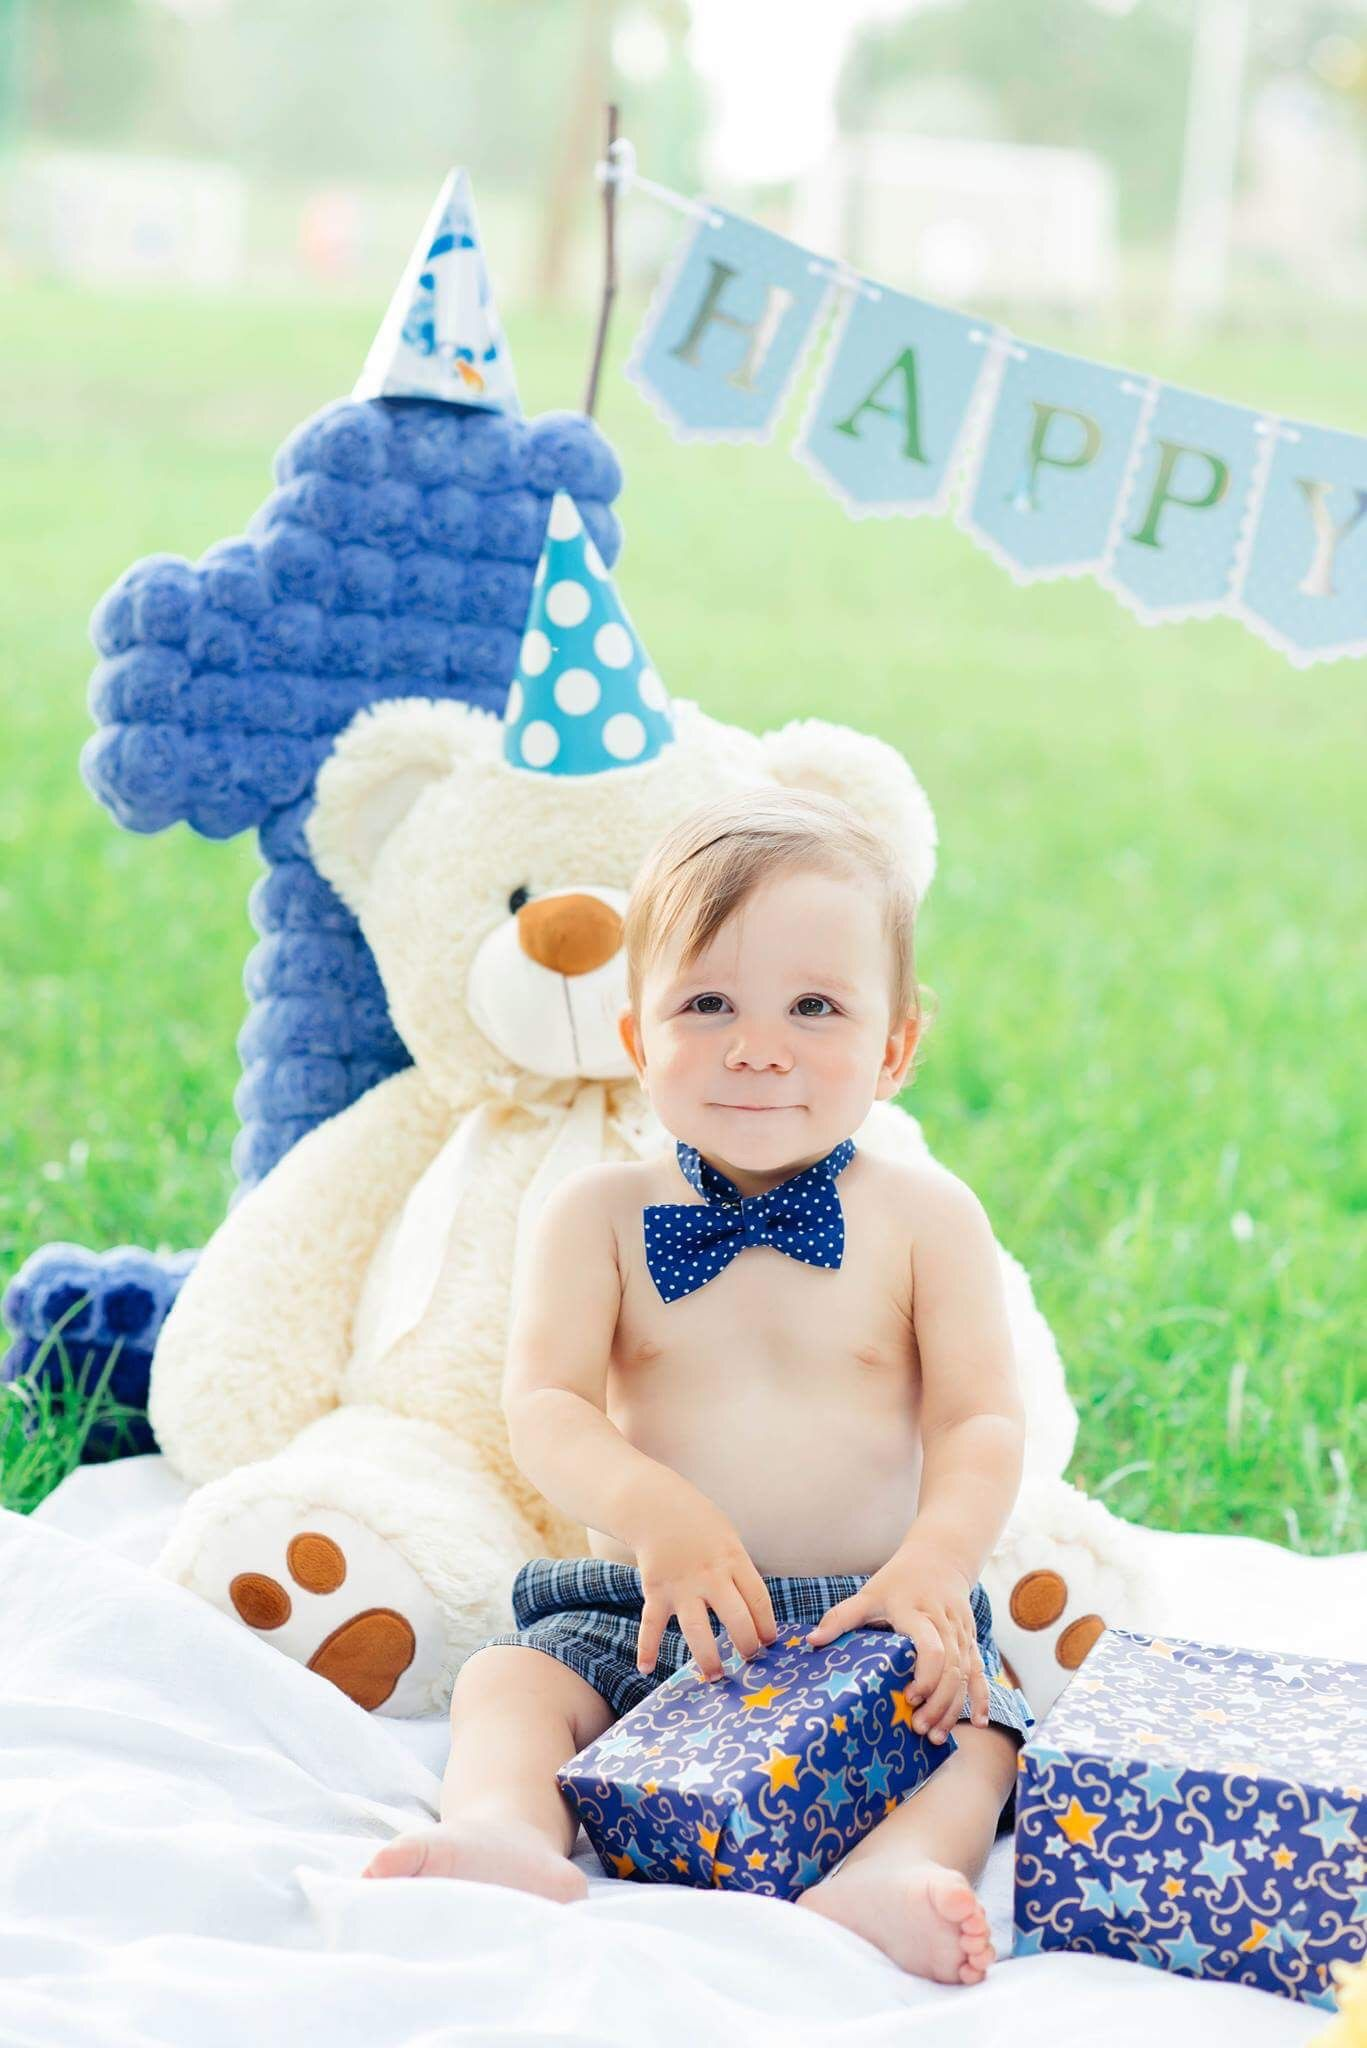 Baby Boy Birthday photo shoot. First birthday photo shoot